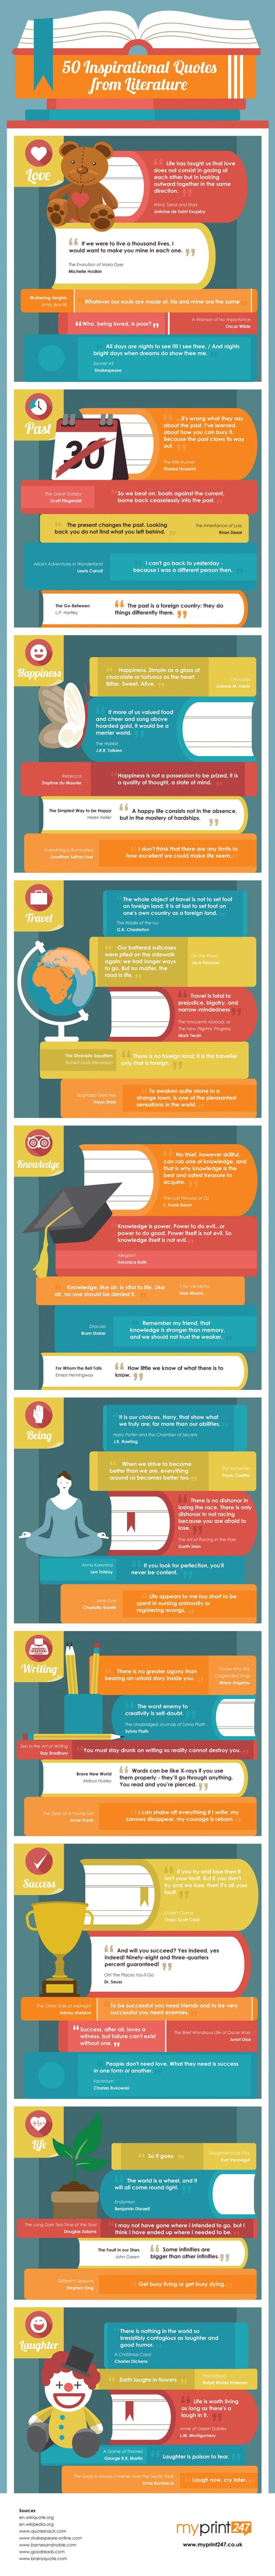 Quotes from world's best-loved books written by the most recognizable authors - all in one #infographic